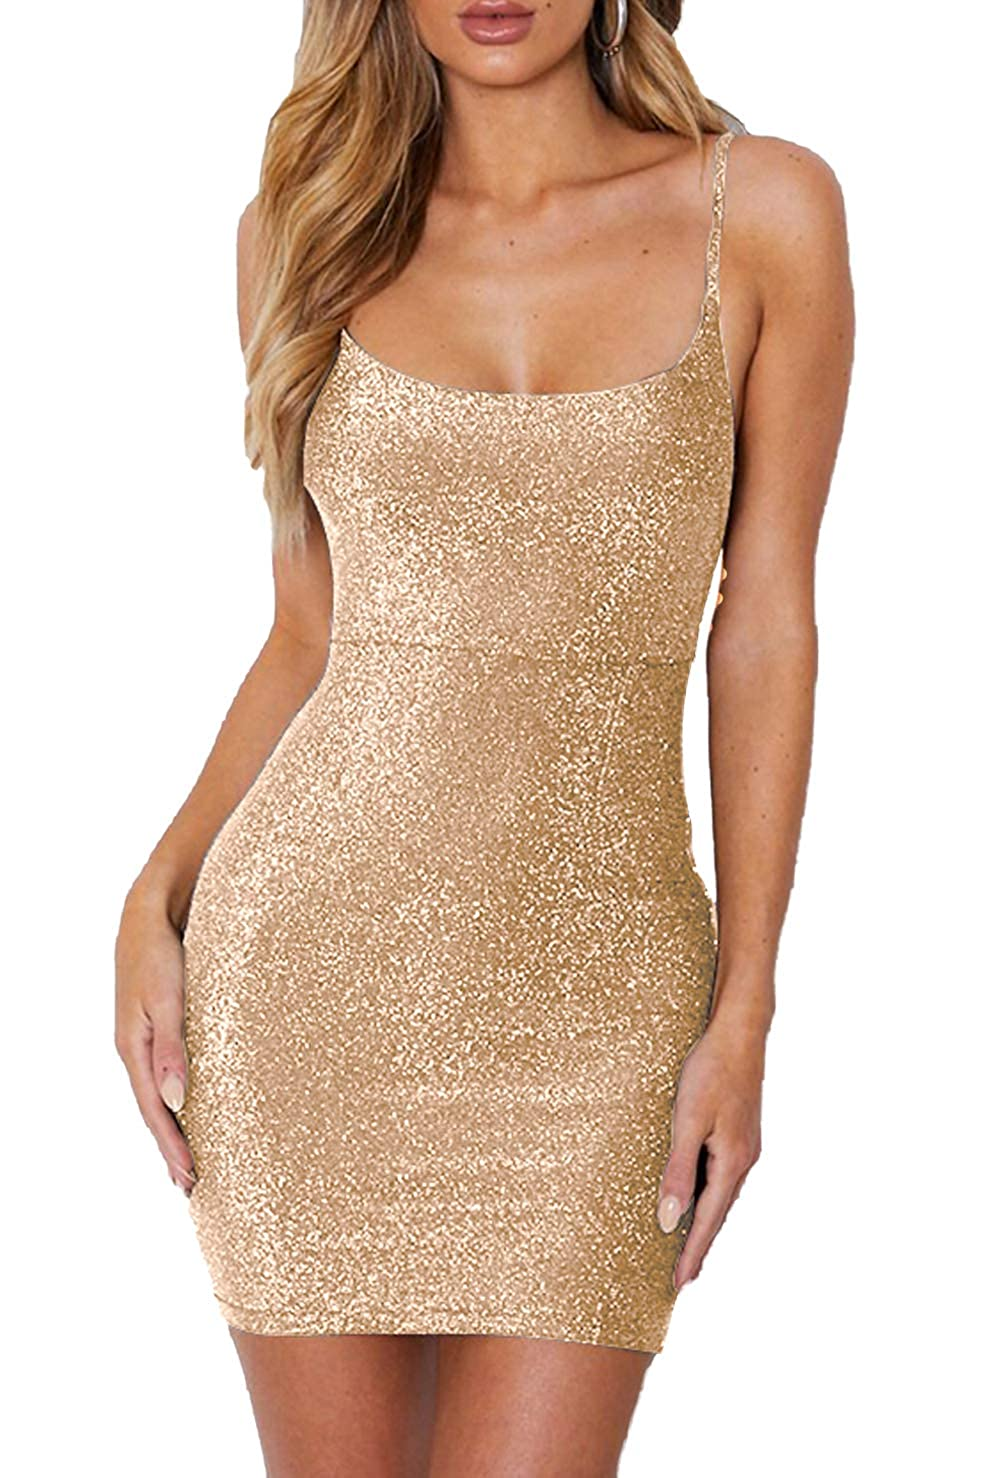 gold Aicycling Womens Glitter Dress Party Lace Up Mini Dress Tie Up Open Back Dress